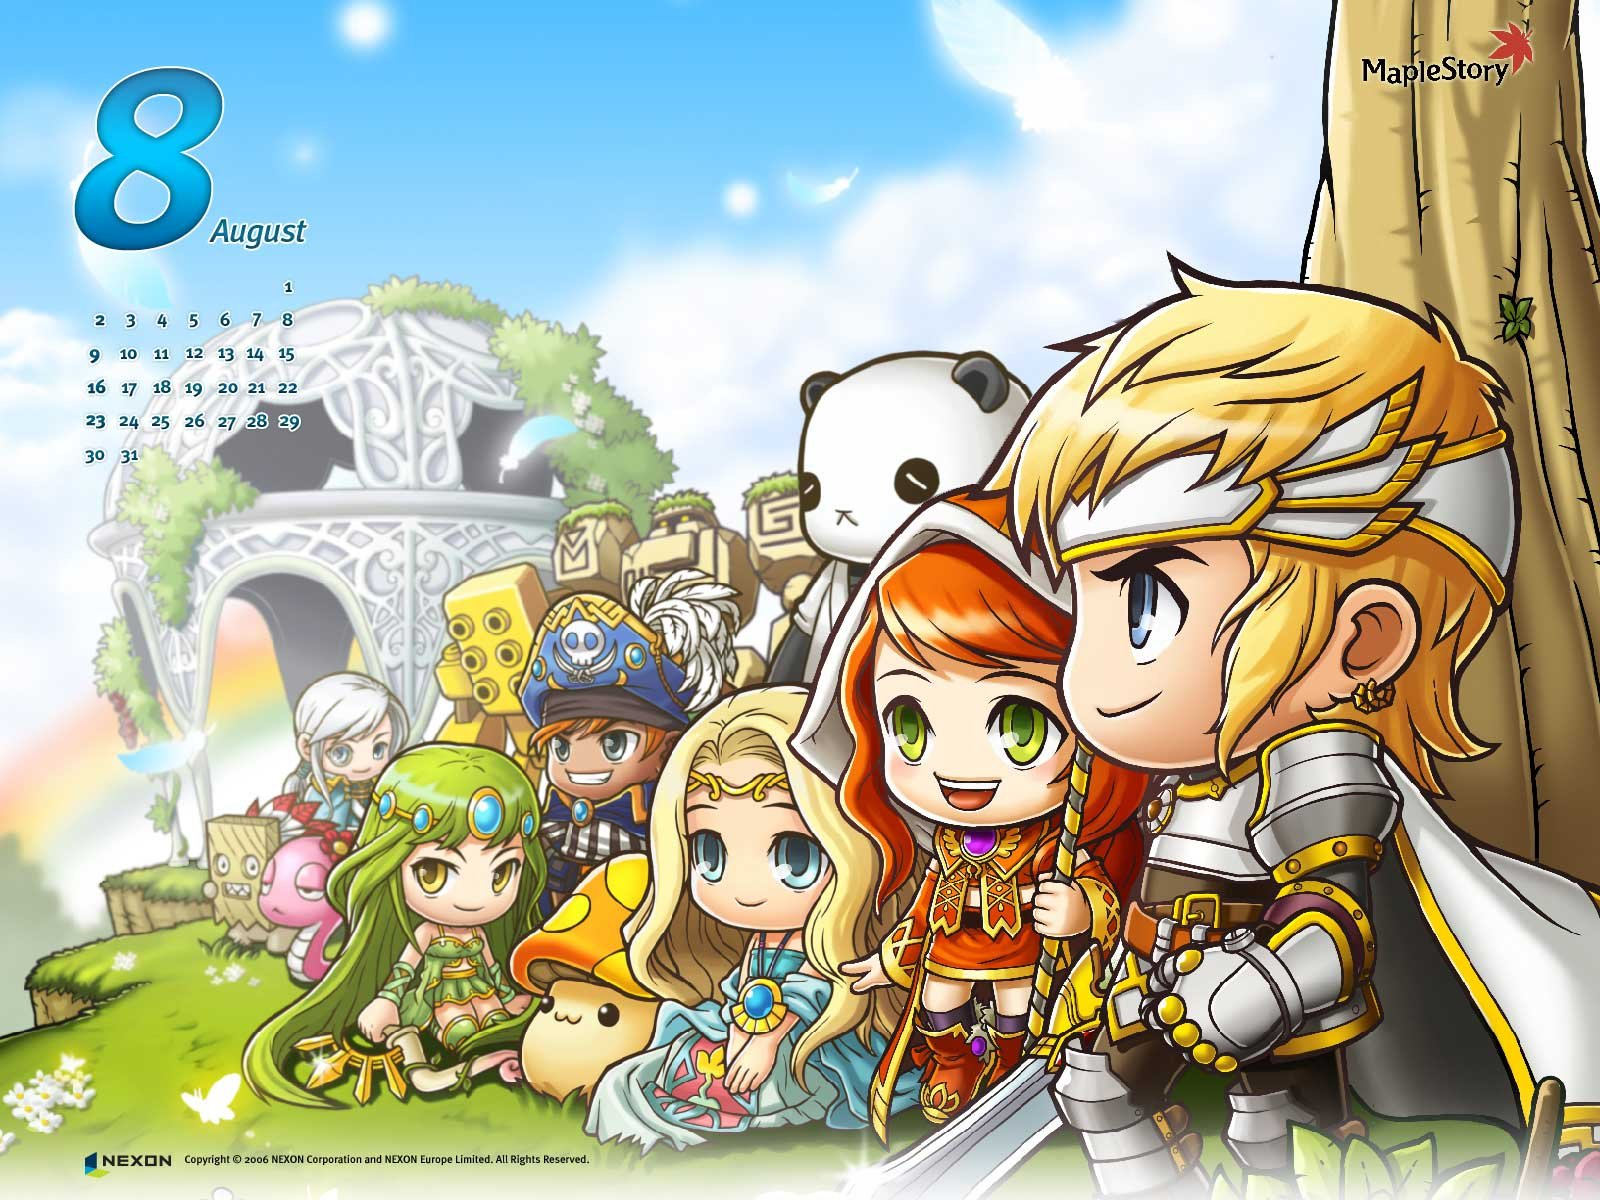 Maplestory Mmo Online Rpg Scrolling Fantasy 2 D Family Maple Story Wallpaper 1600x10 Wallpaperup